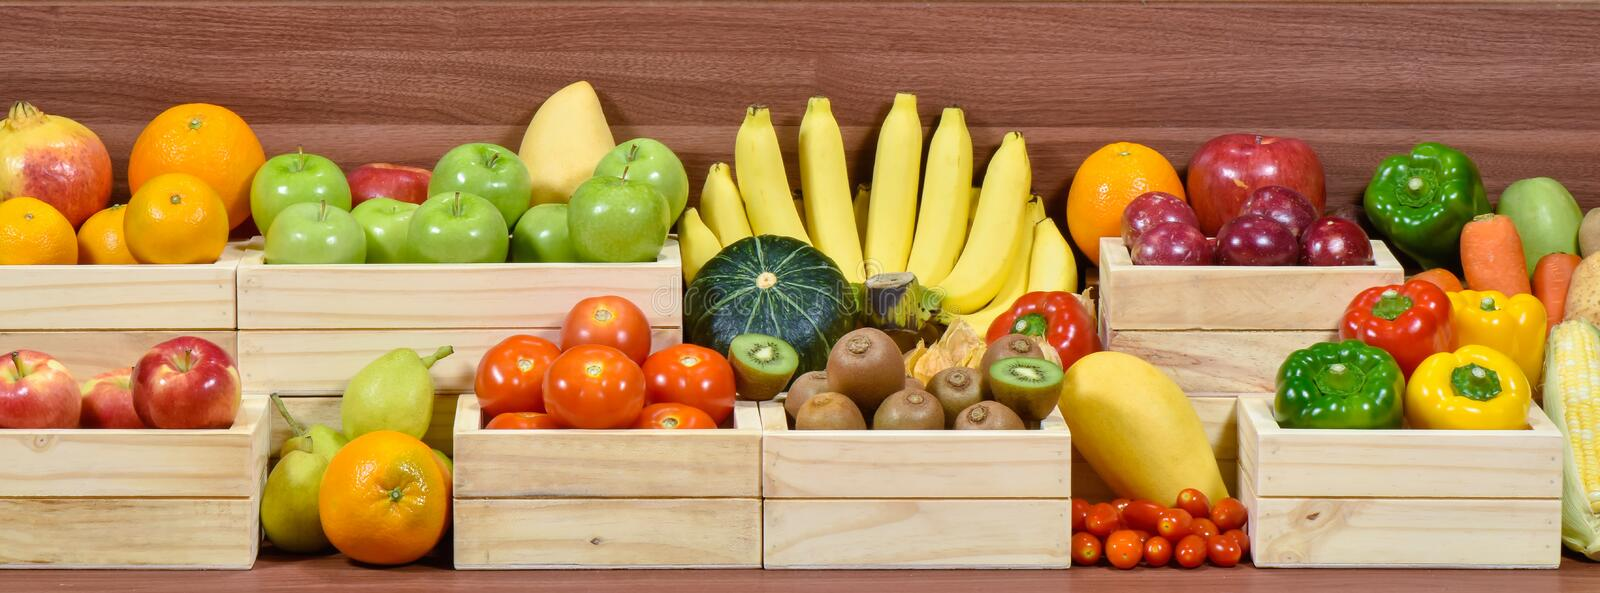 Fresh fruits and vegetables in woodem box stock photography